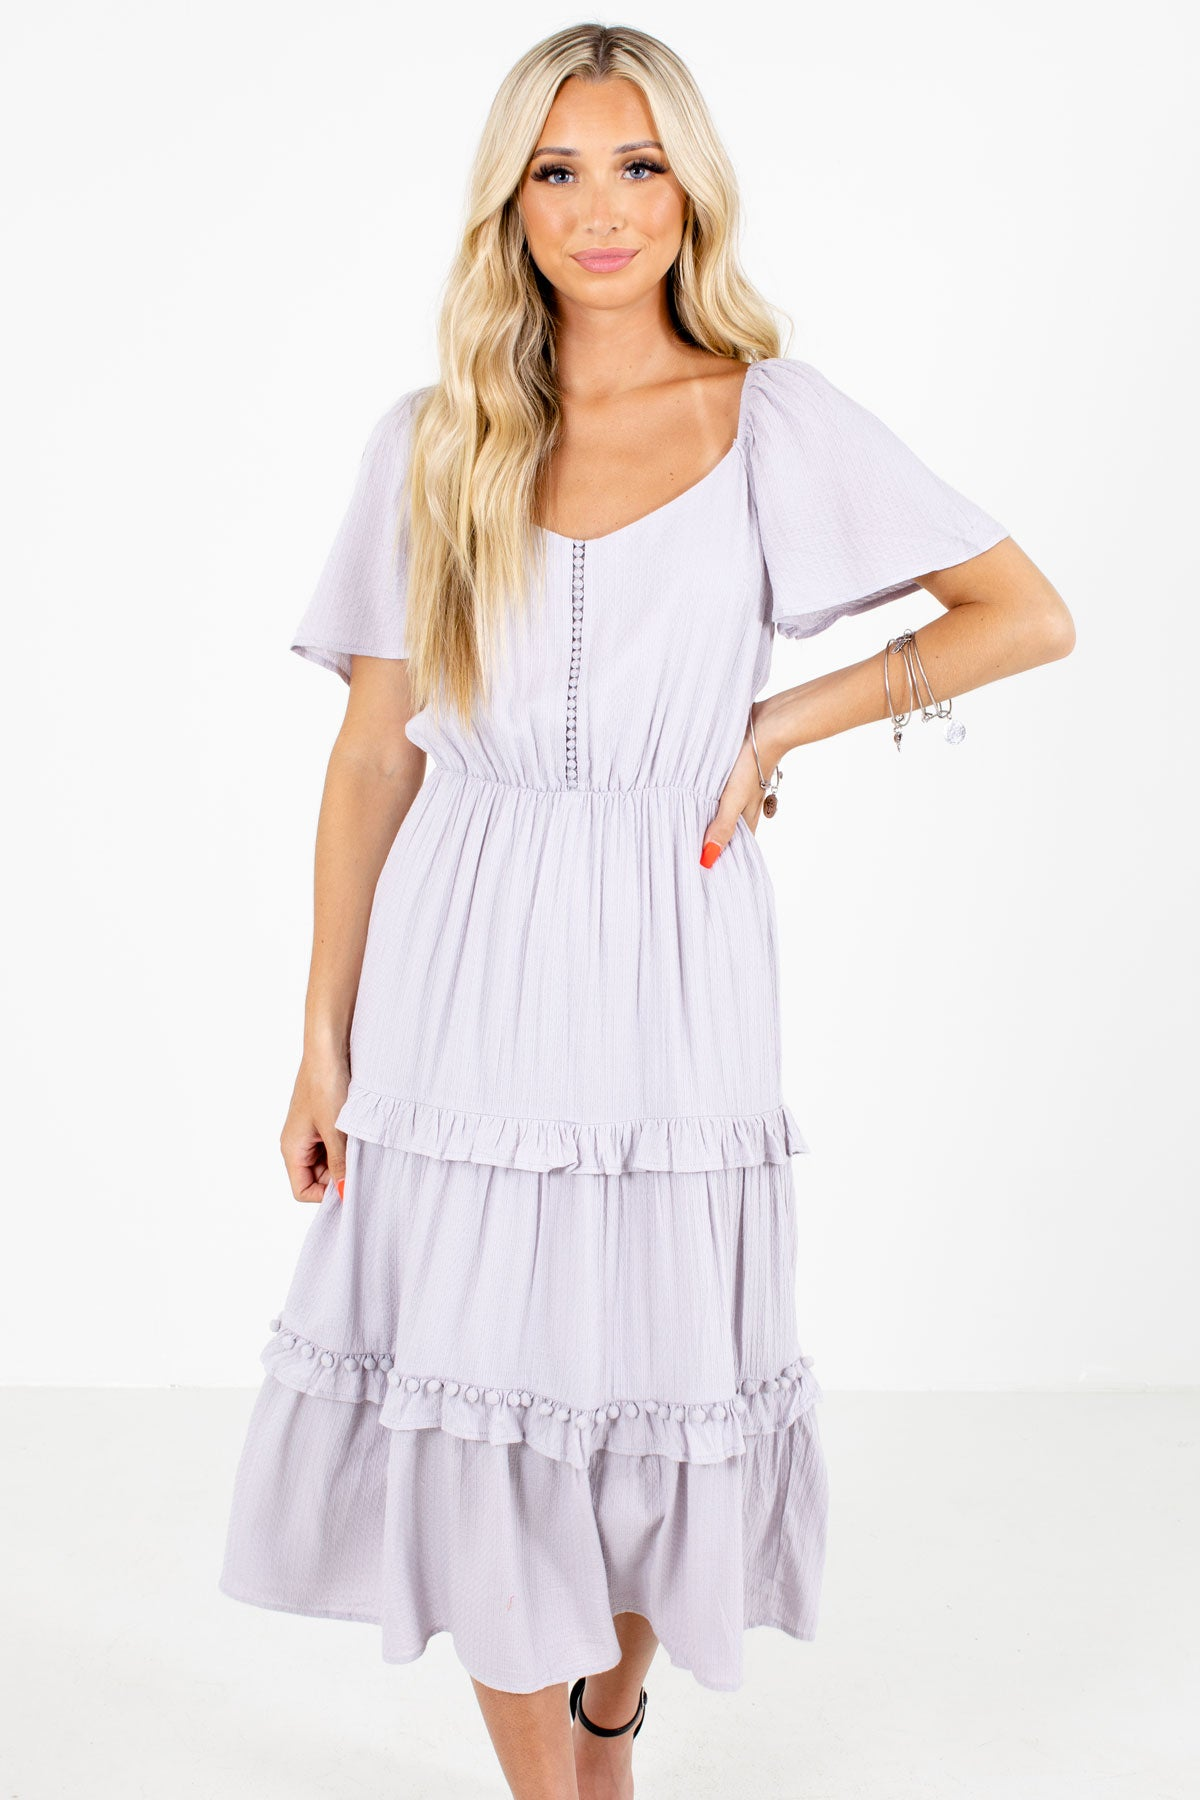 Purple Ruffled Accented Boutique Midi Dresses for Women